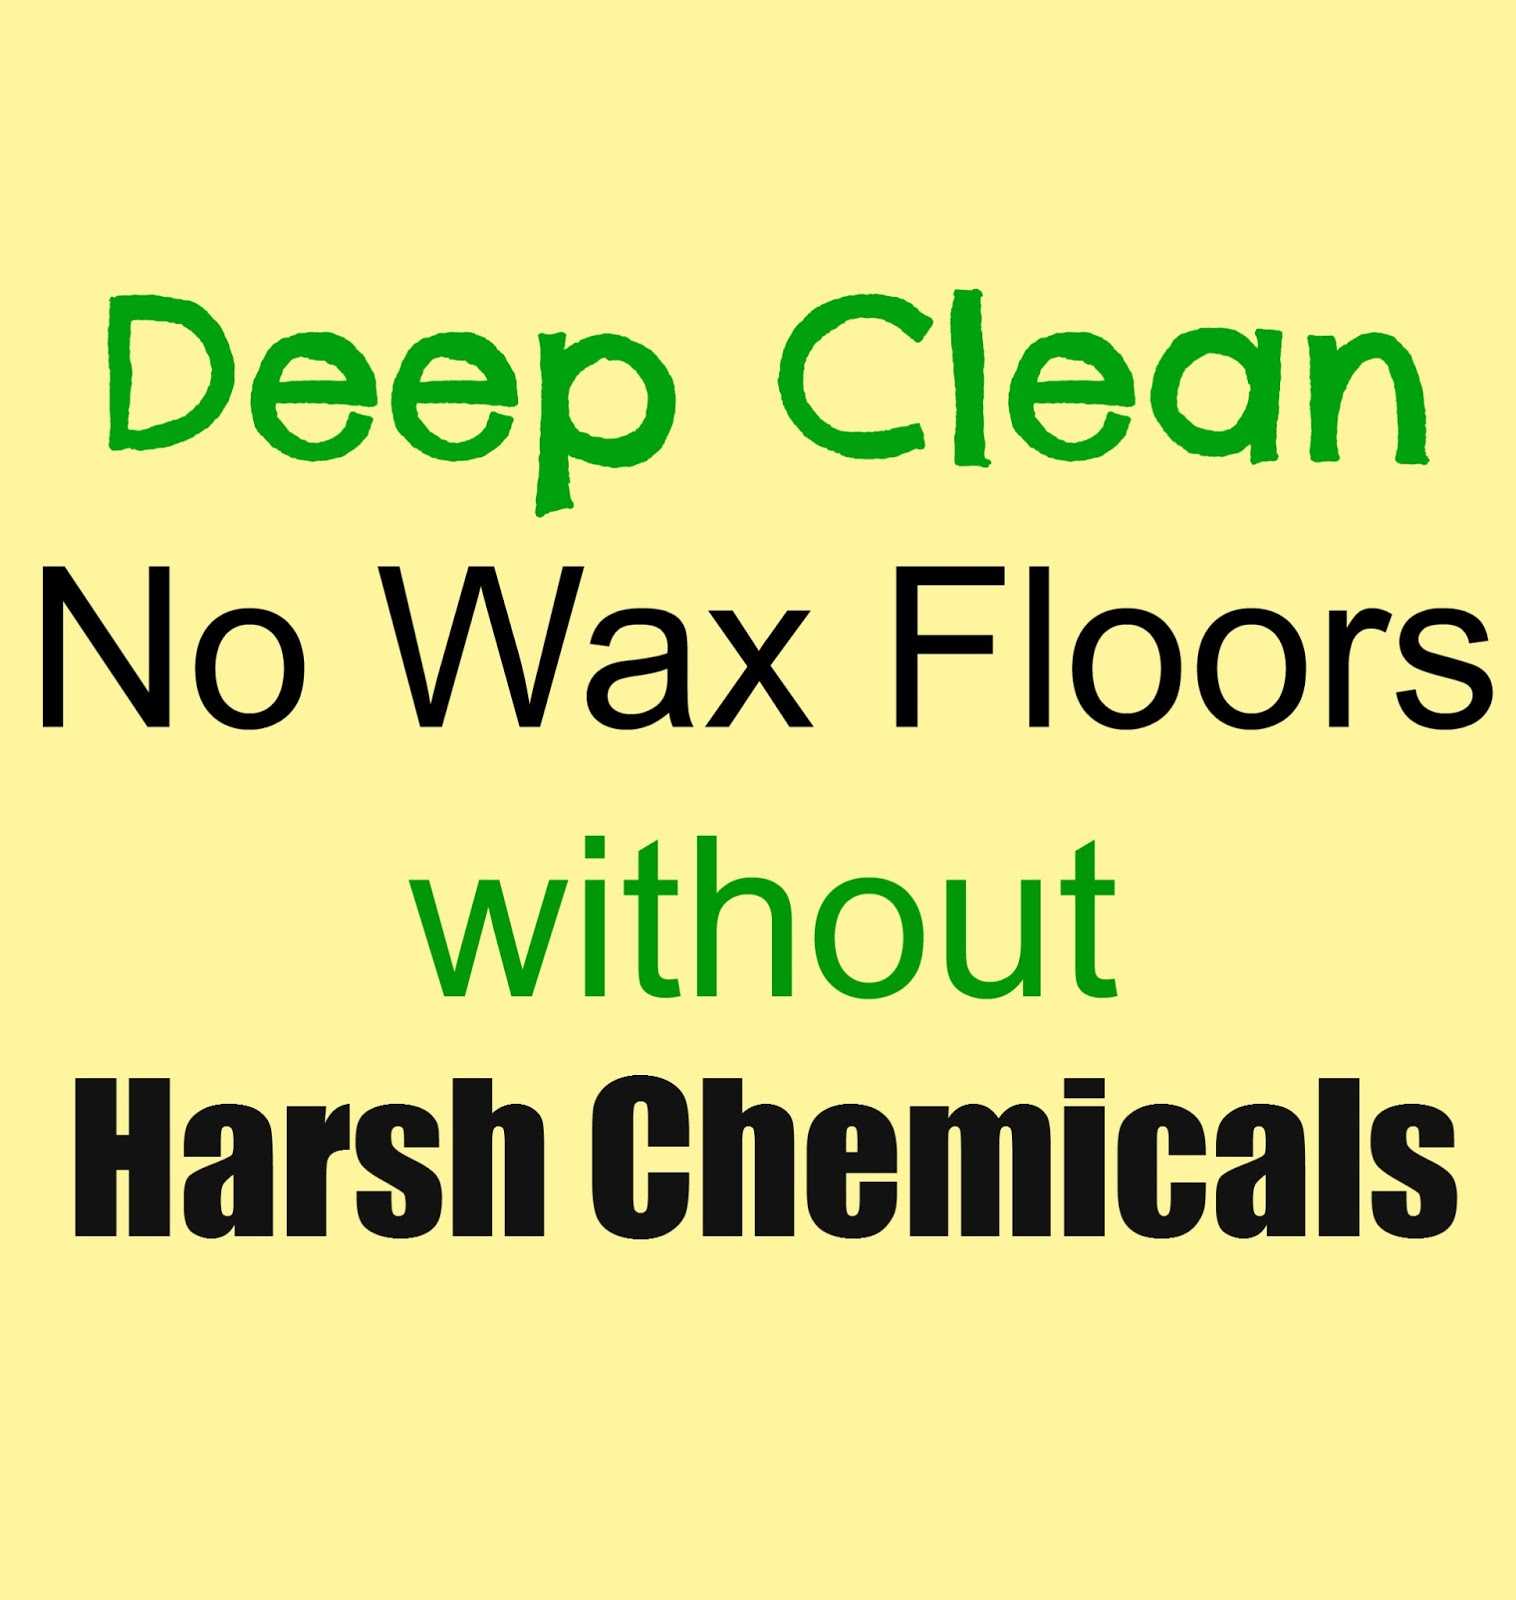 Deep Cleaning No-Wax Floors Without Harsh Chemicals